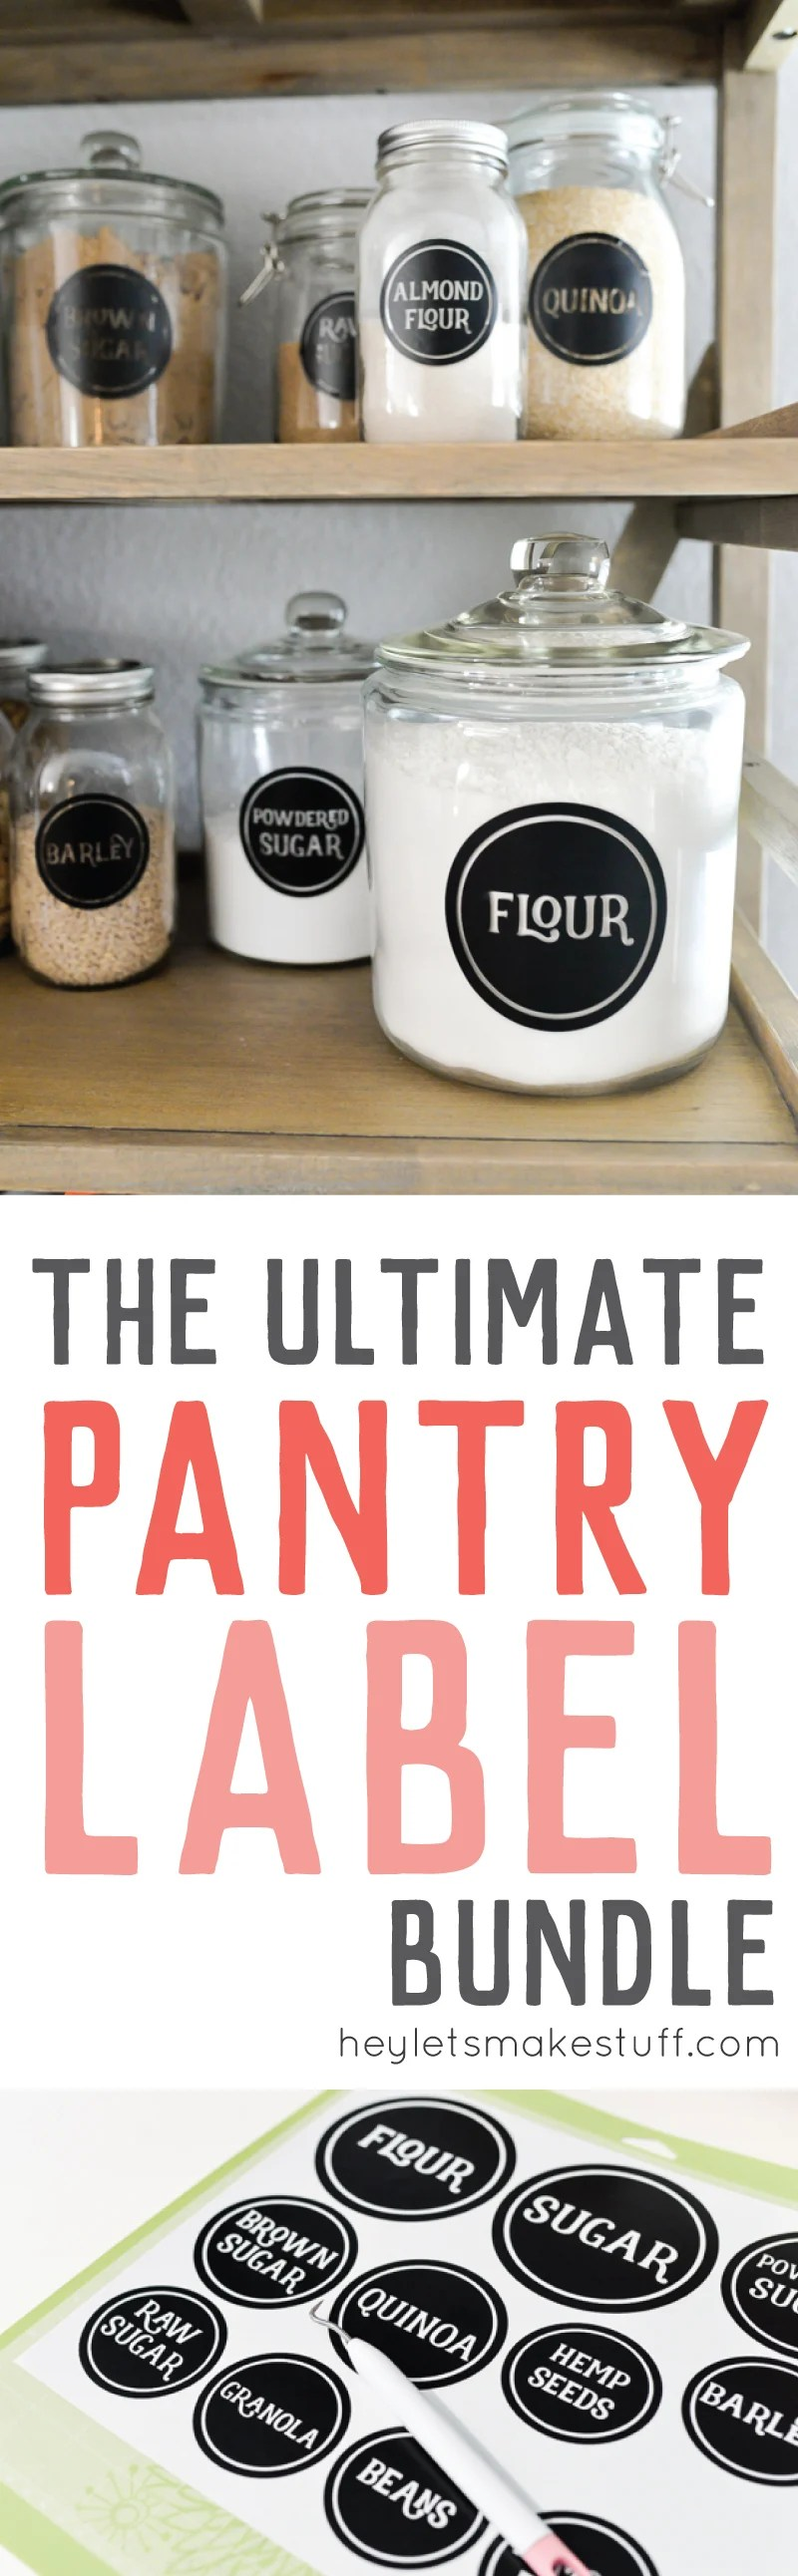 Organize your pantry with these vinyl pantry labels! Download this ultimate bundle of 126 SVG labels, and cut them out on your Cricut or other electronic cutting machine! Includes a tutorial for applying the vinyl labels to your jars or canisters. via @heyletsmakestuf